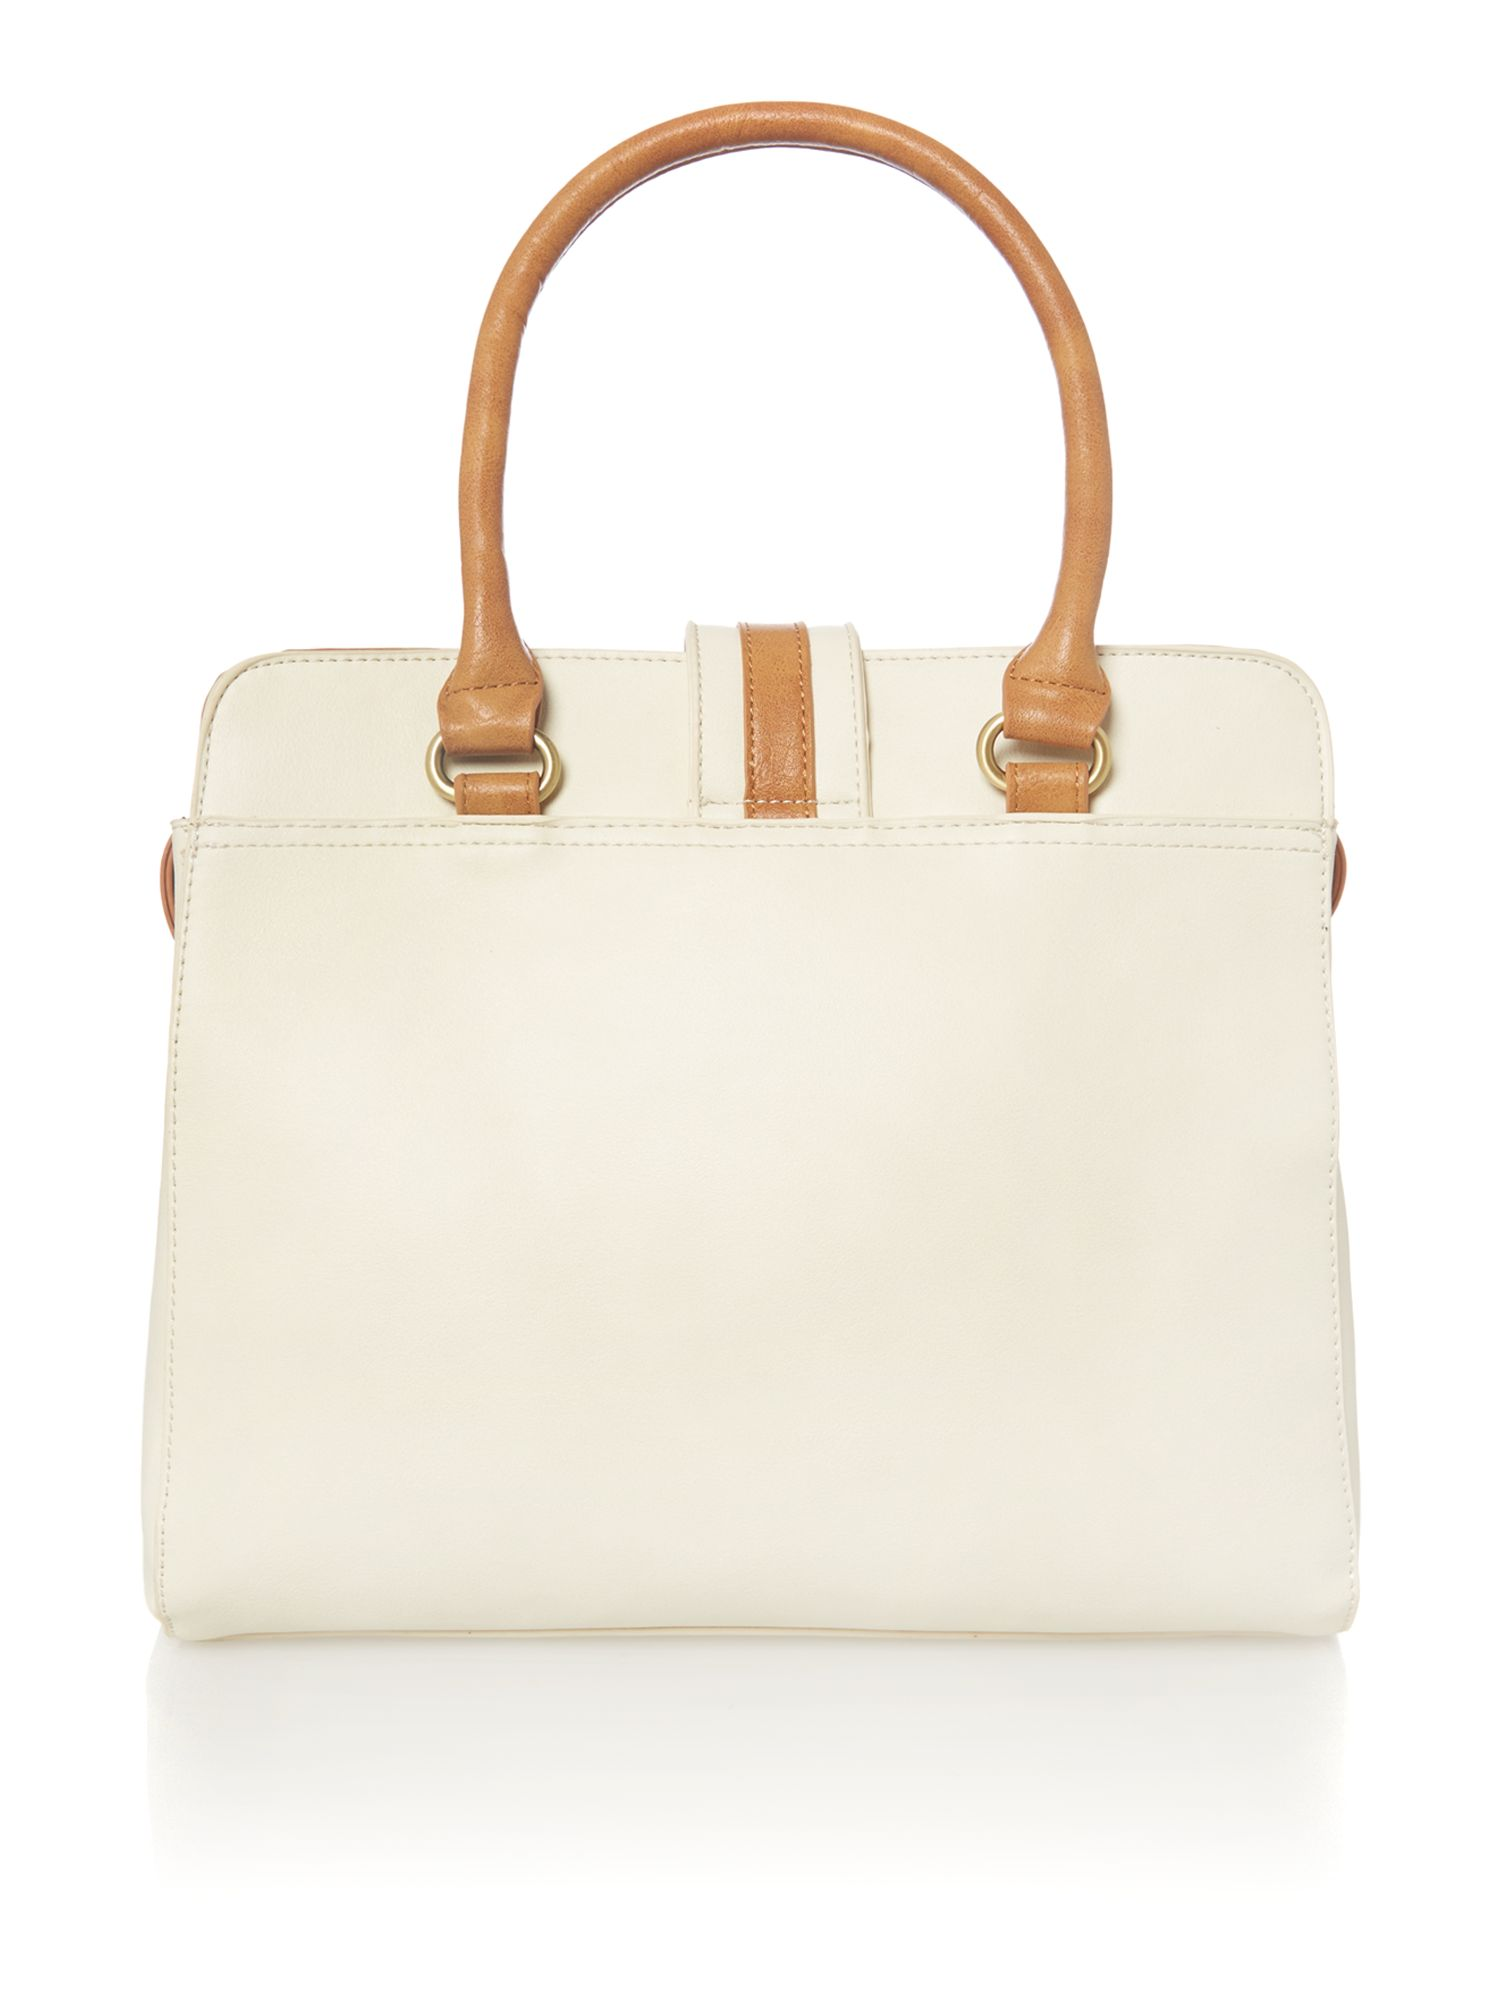 Laine cream tote bag